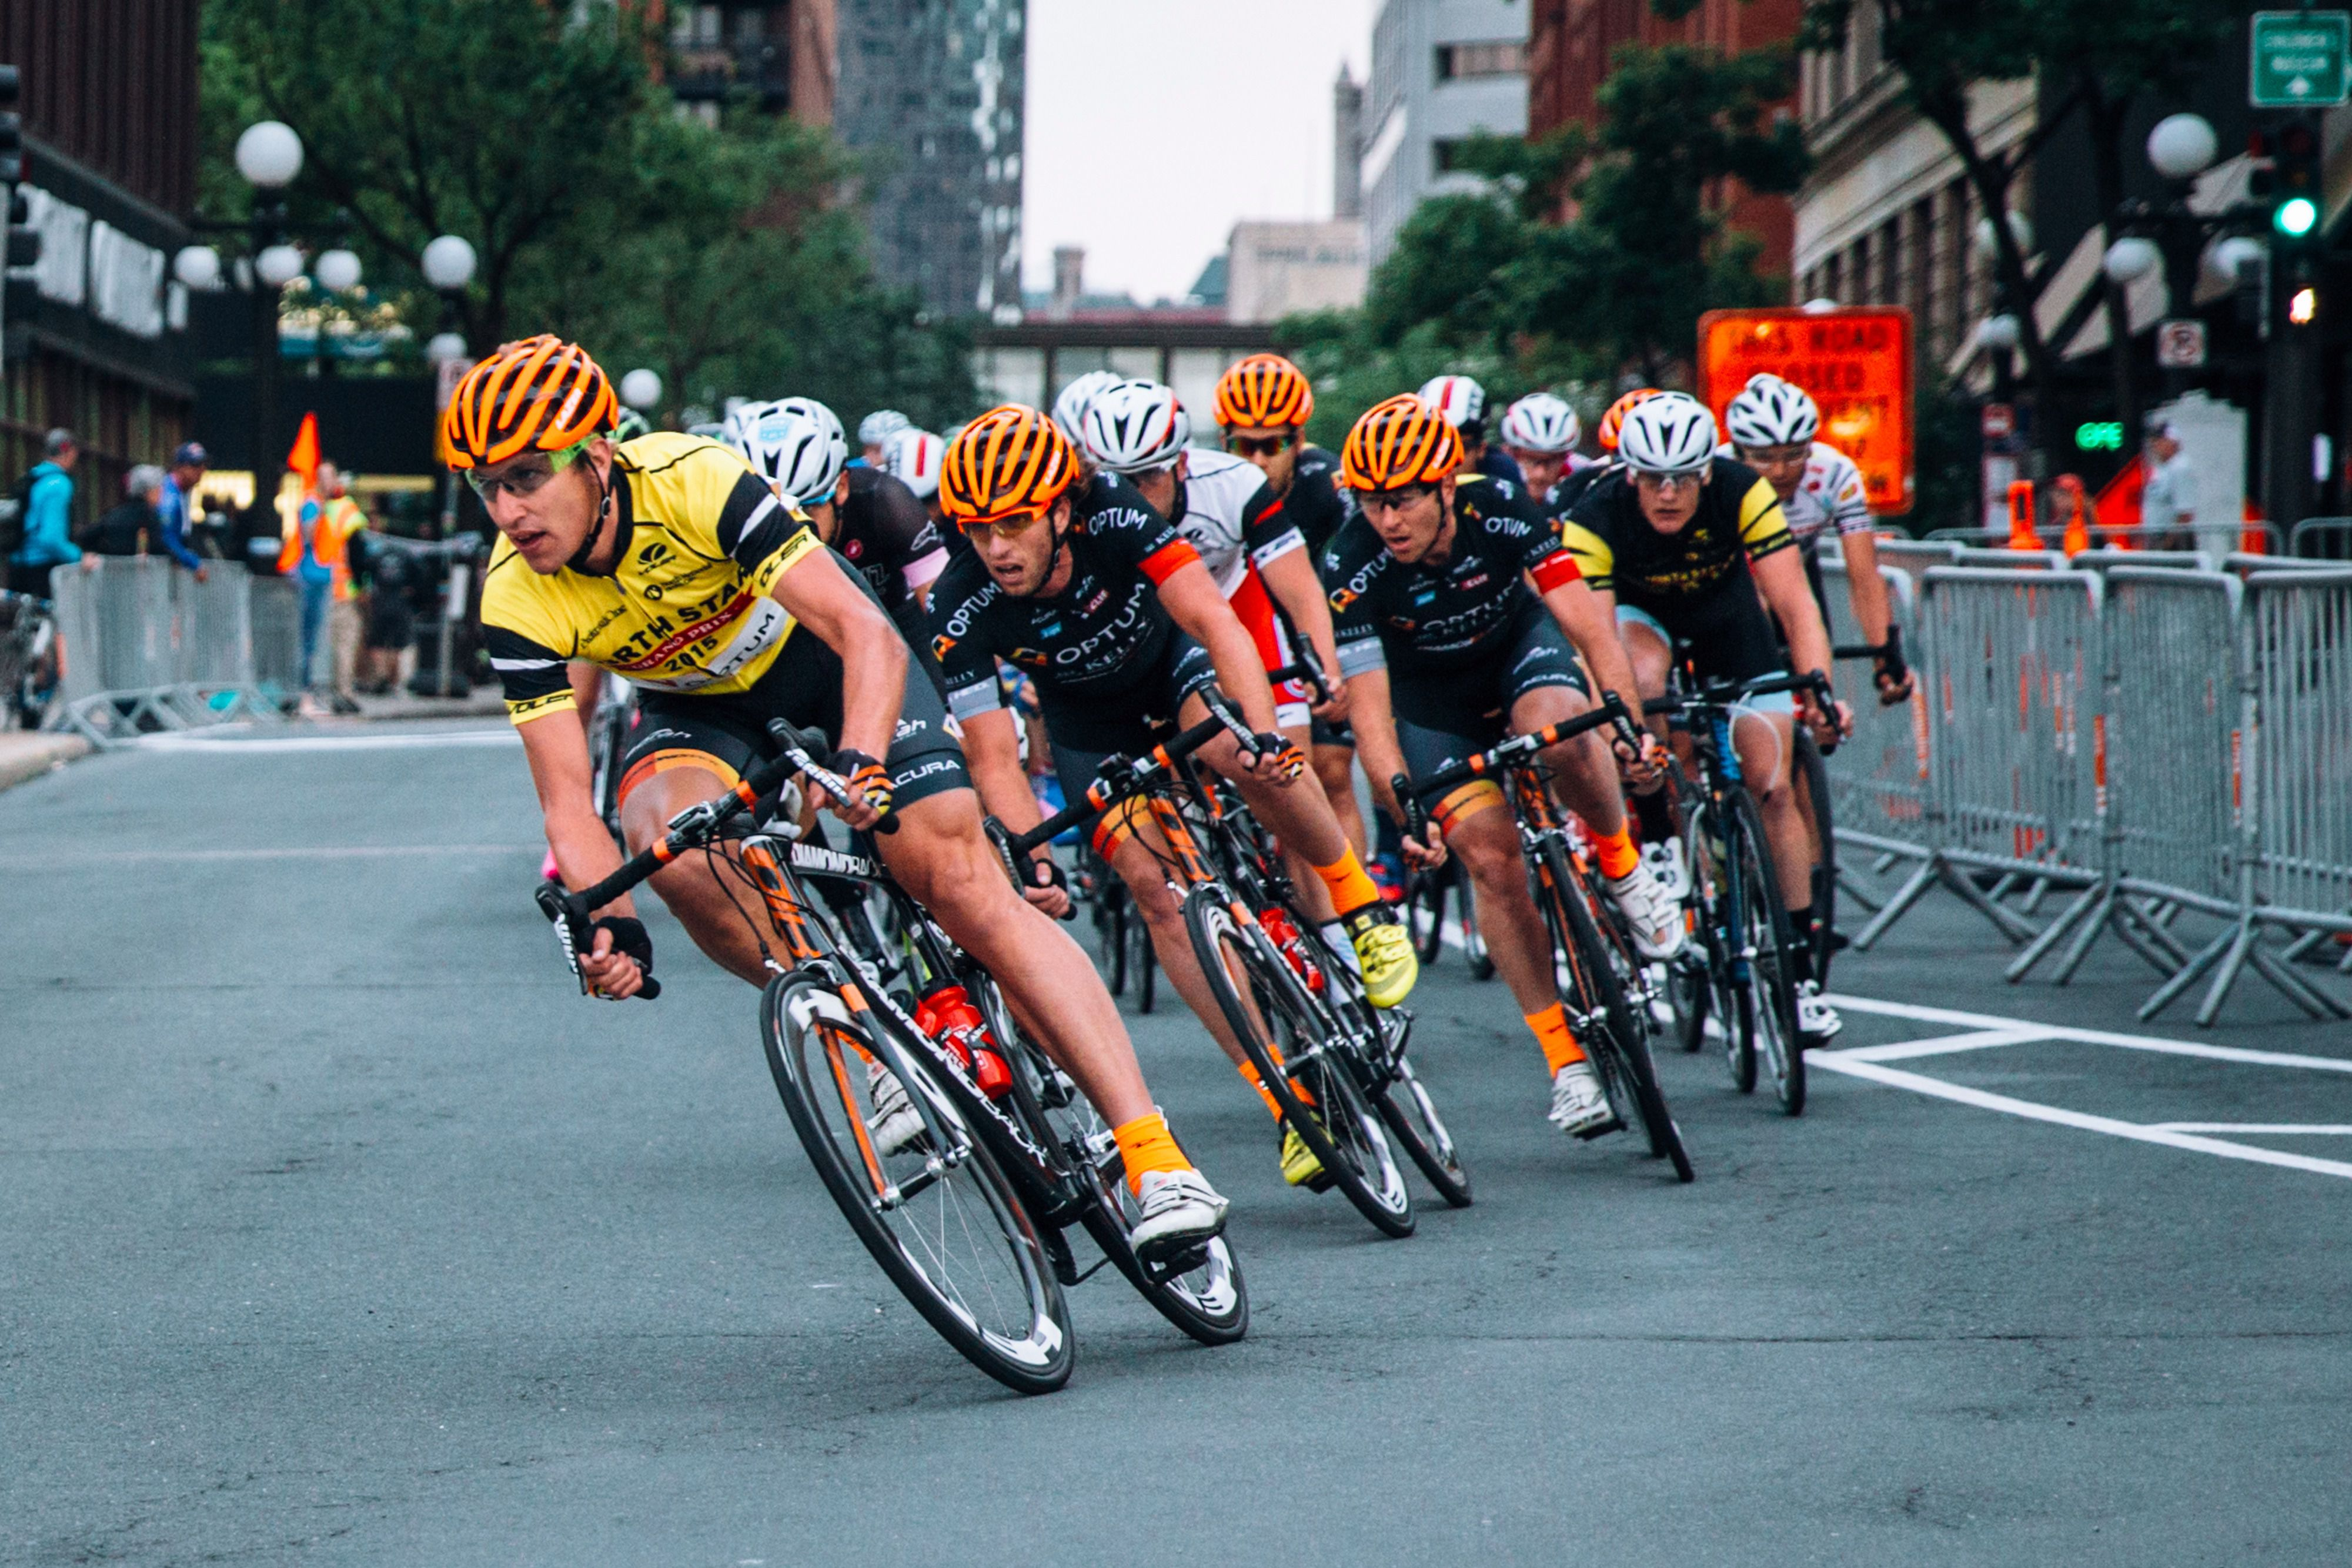 In Action: Optum, America's top cycling team, in black outfits and orange helmets.